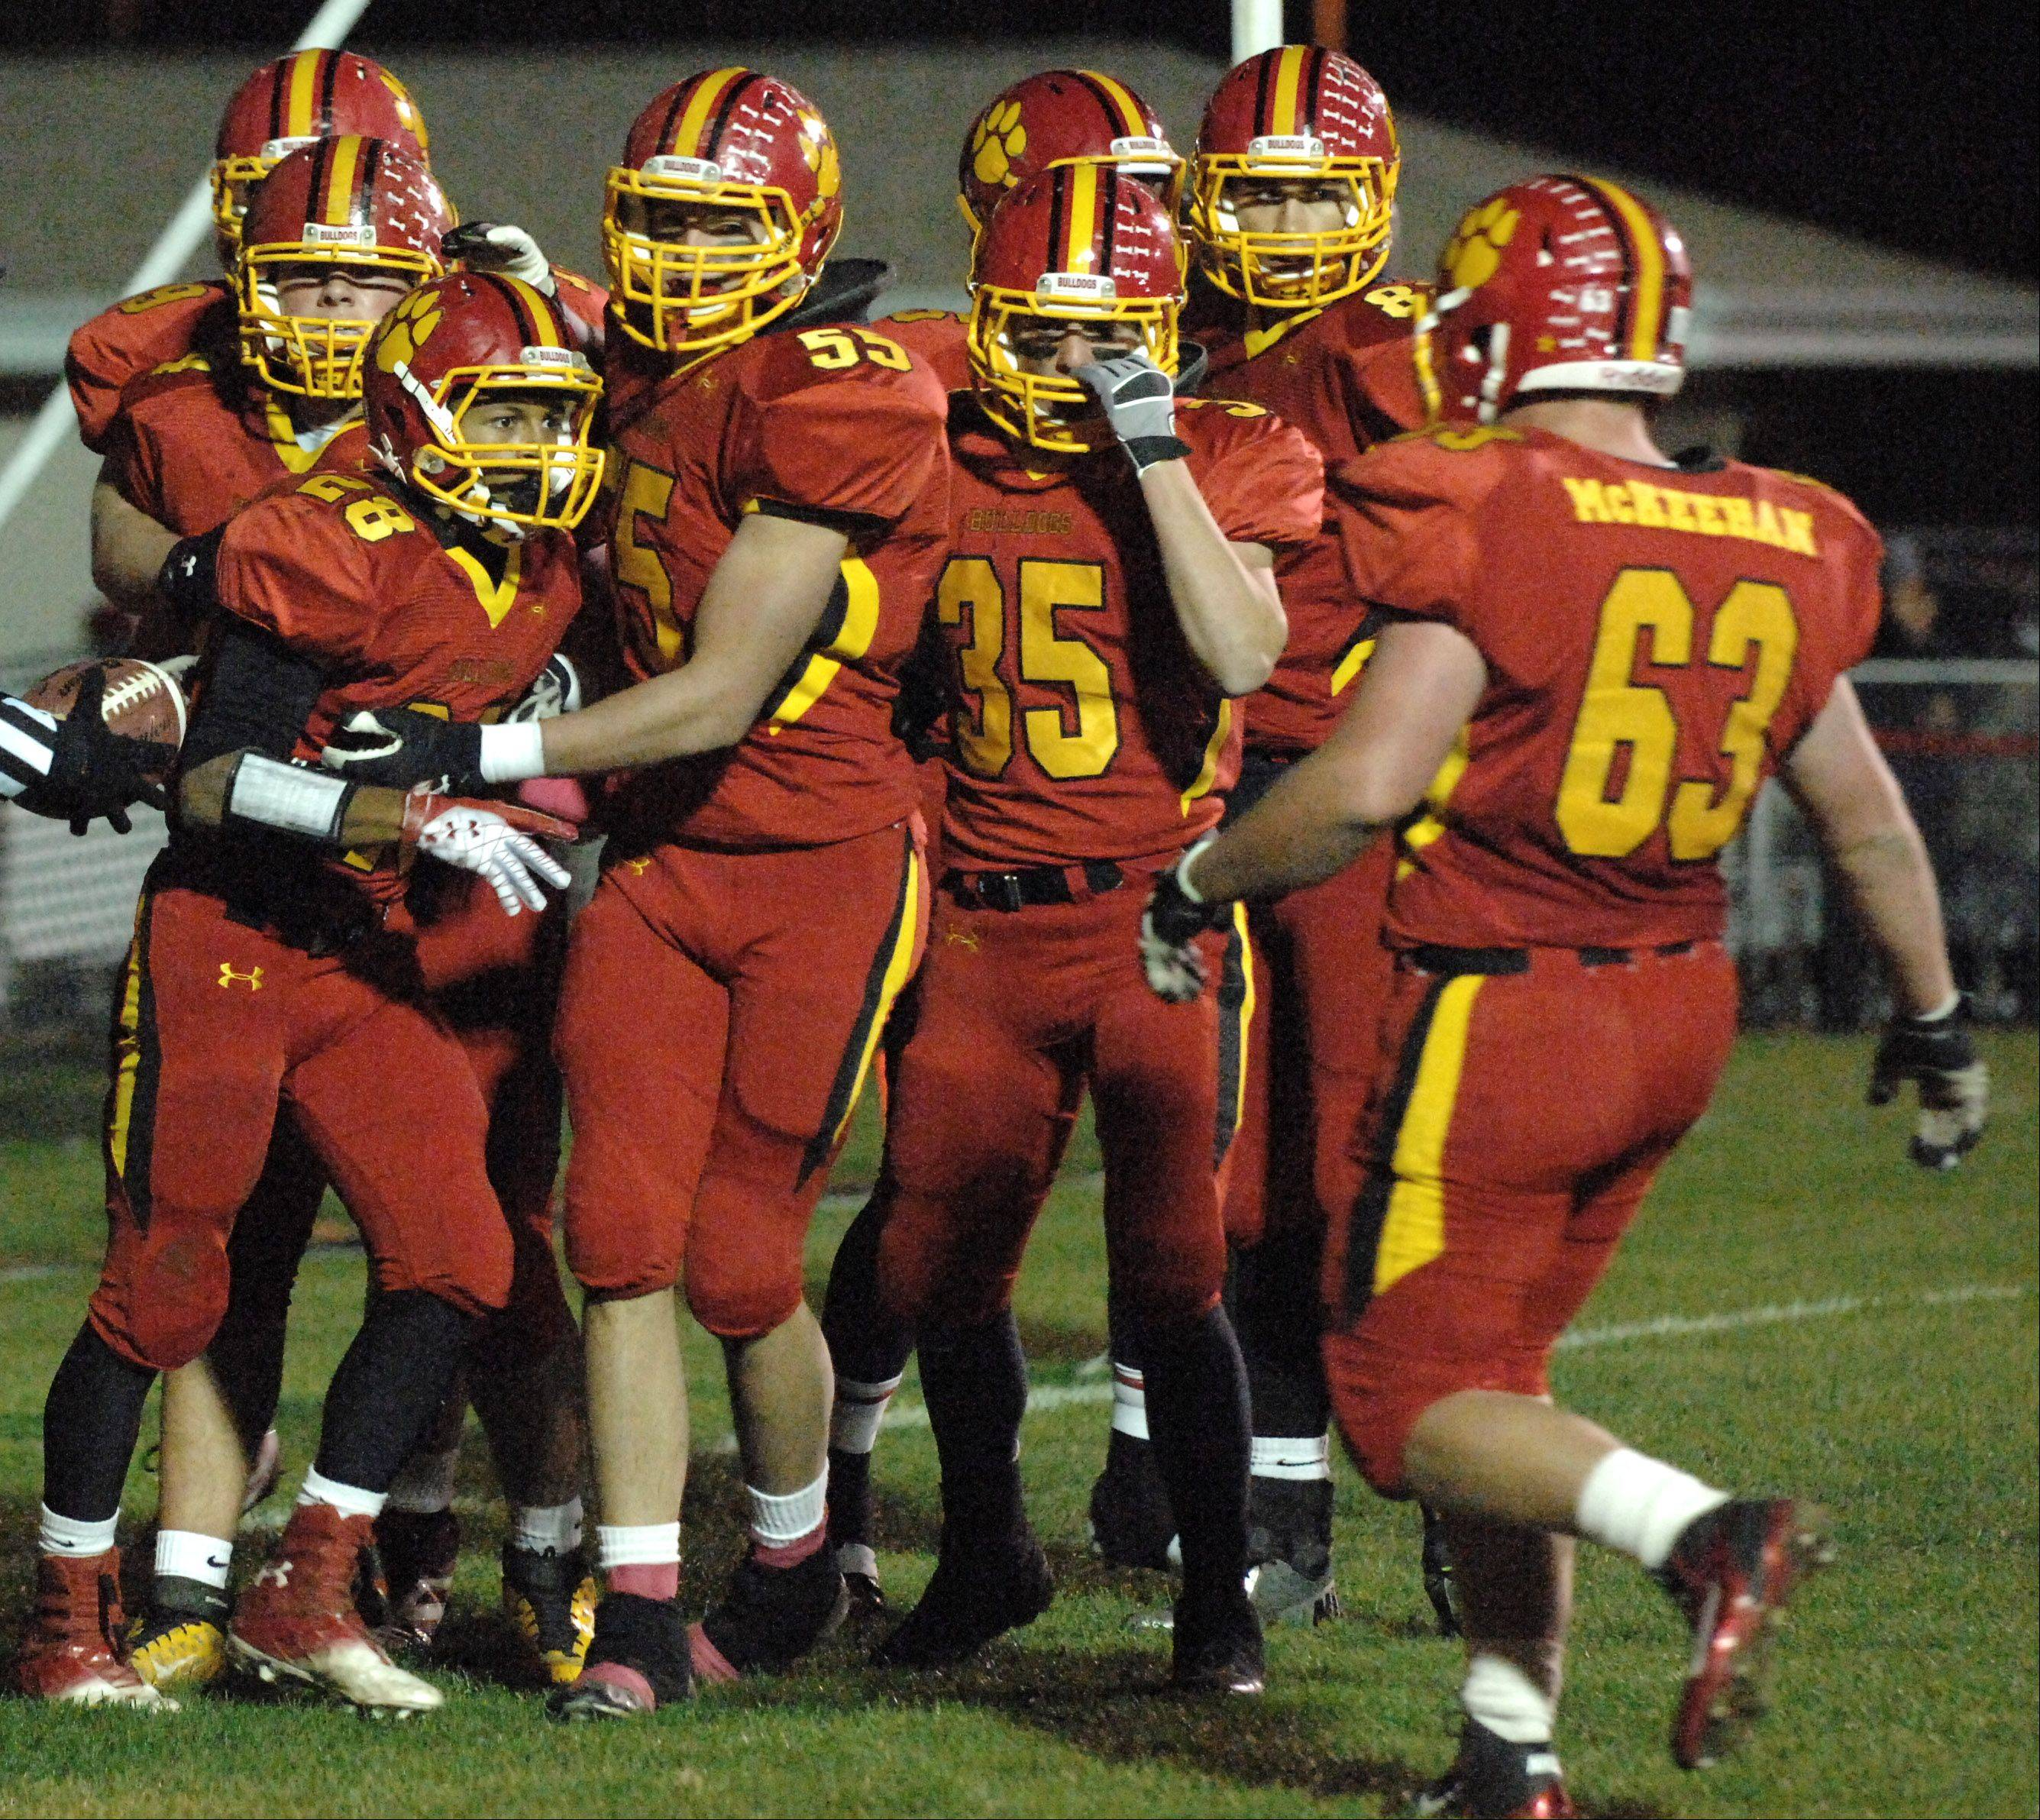 Batavia teammates congratulate Anthony Scaccia (28) after a third quarter touchdown during Friday's game at Batavia.